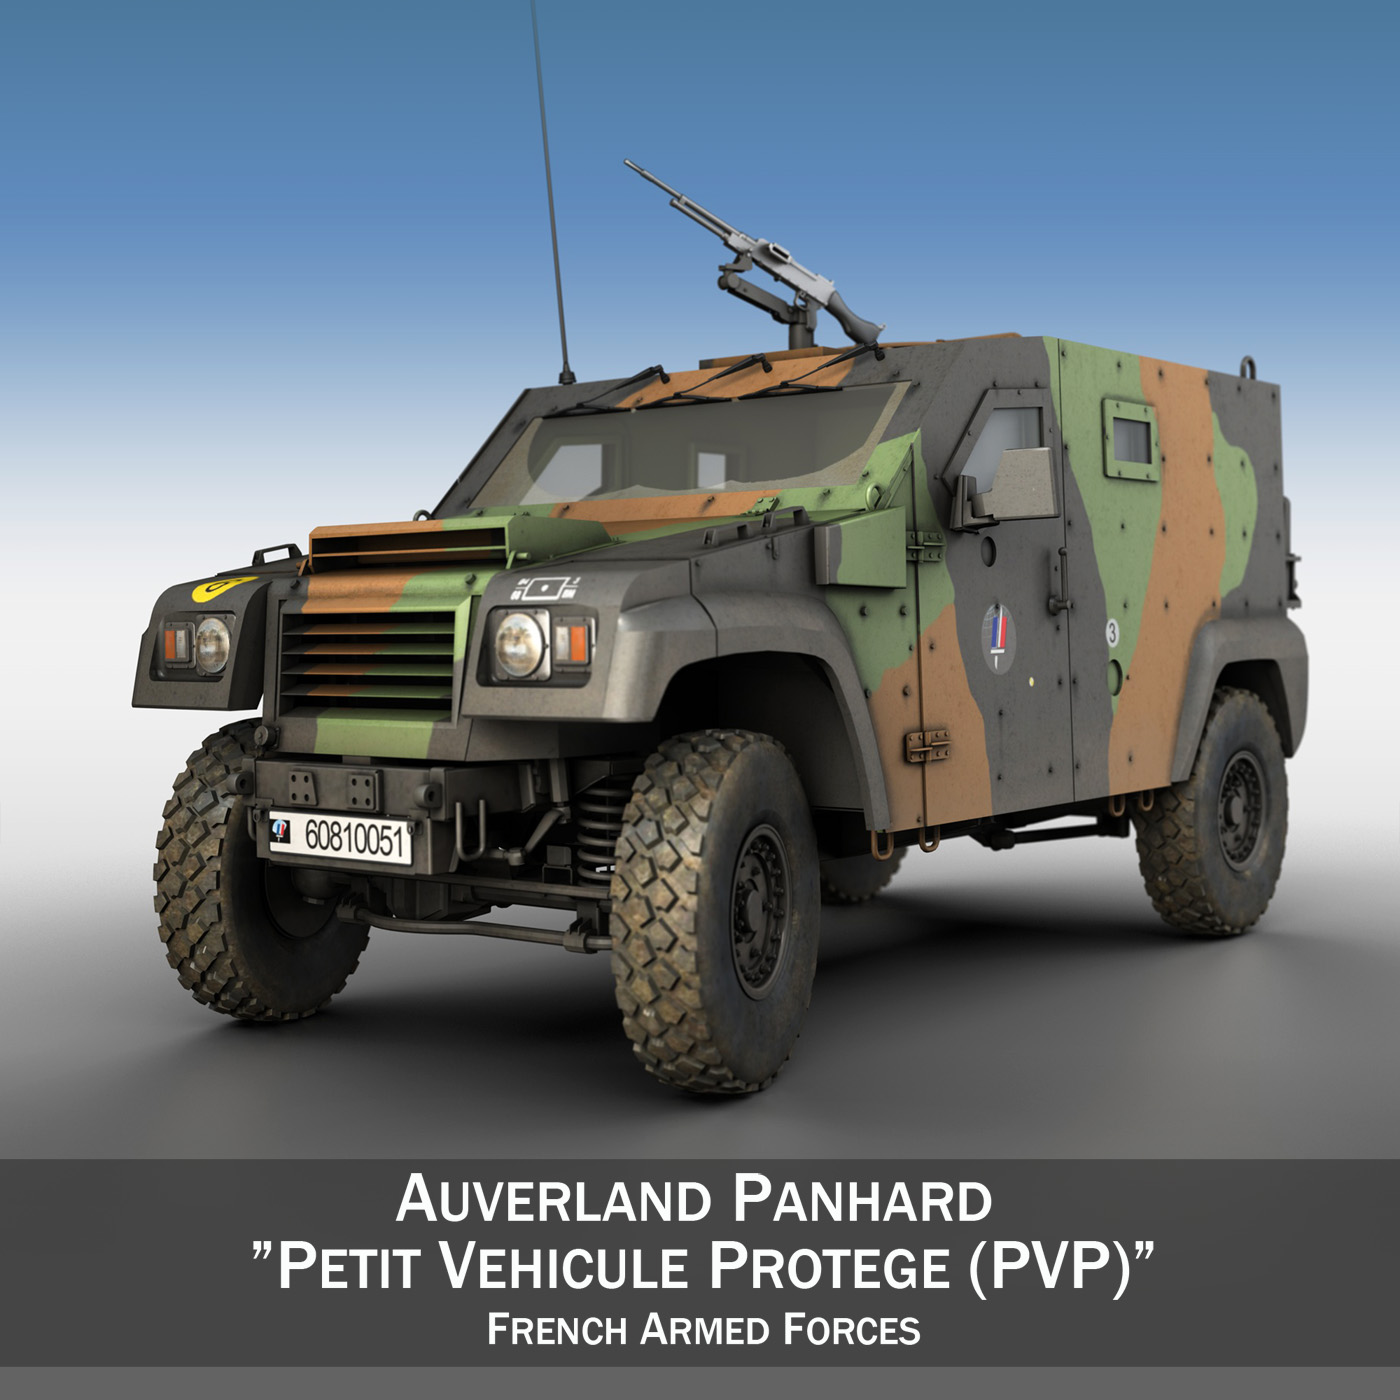 auverland panhard pvp – french army 3d model 3ds fbx c4d lwo obj 190089